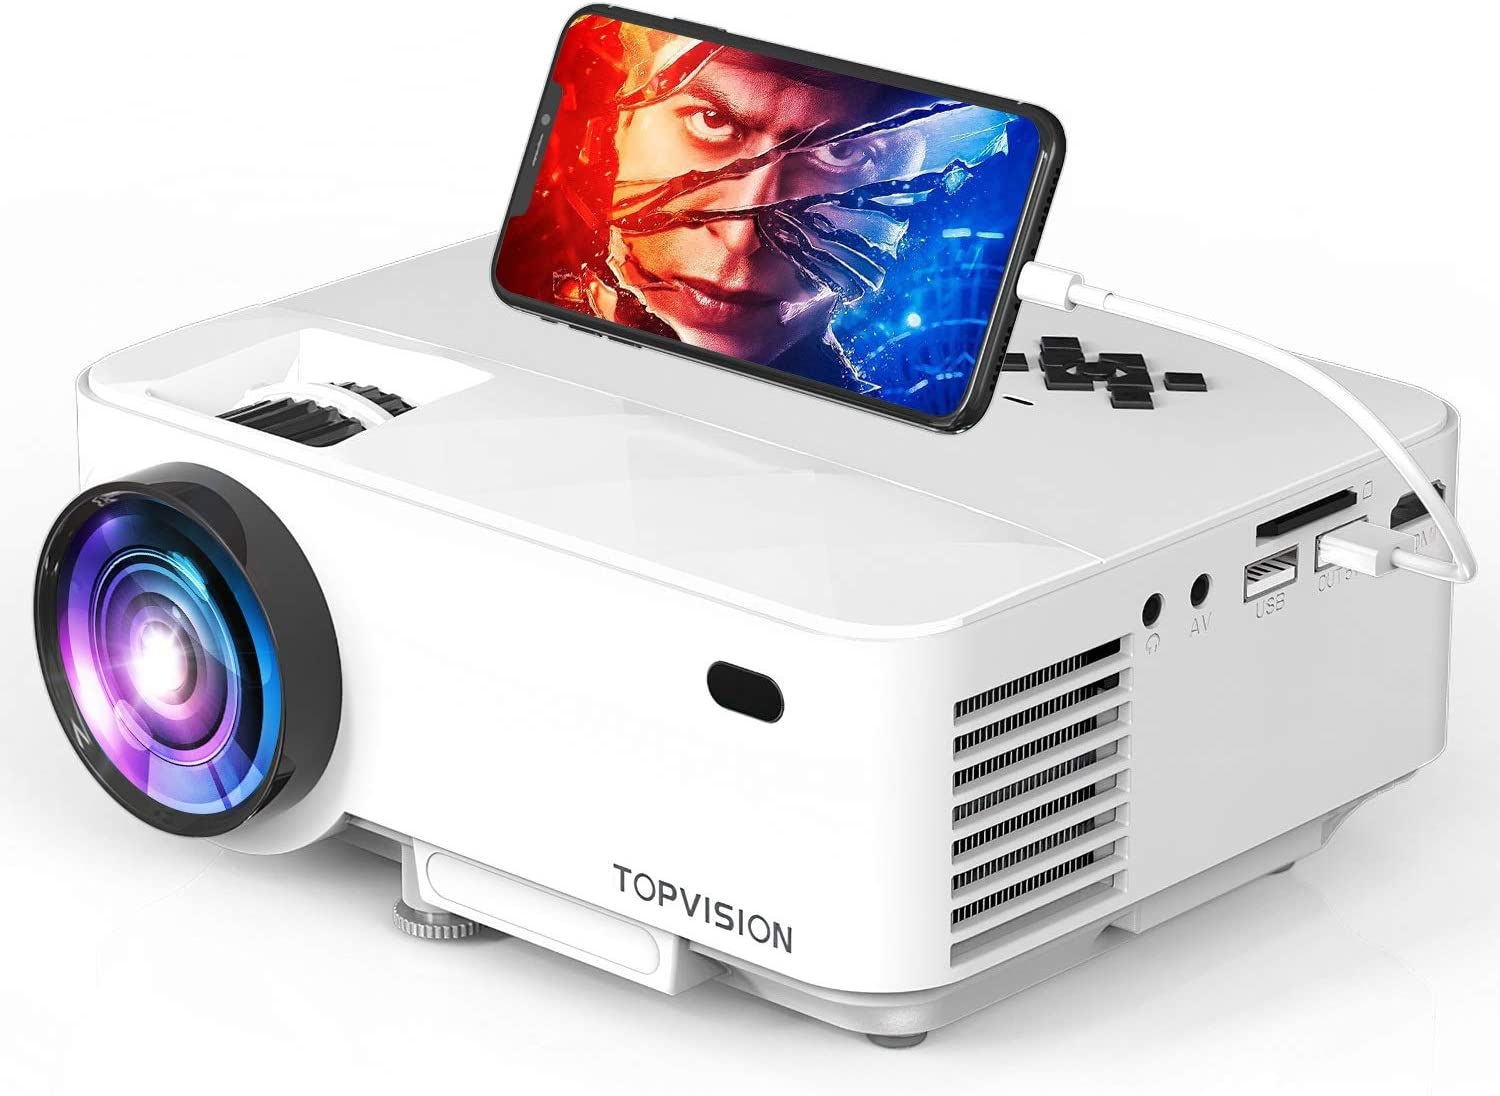 TOPVISION Mini Video Projector 4500LUX Outdoor Movie Projector with Synchronize Smart Phone Screen,Full HD 1080P Supported LED Projector, Compatible with Fire Stick,HDMI,VGA,USB,TV,Box,Laptop,DVD